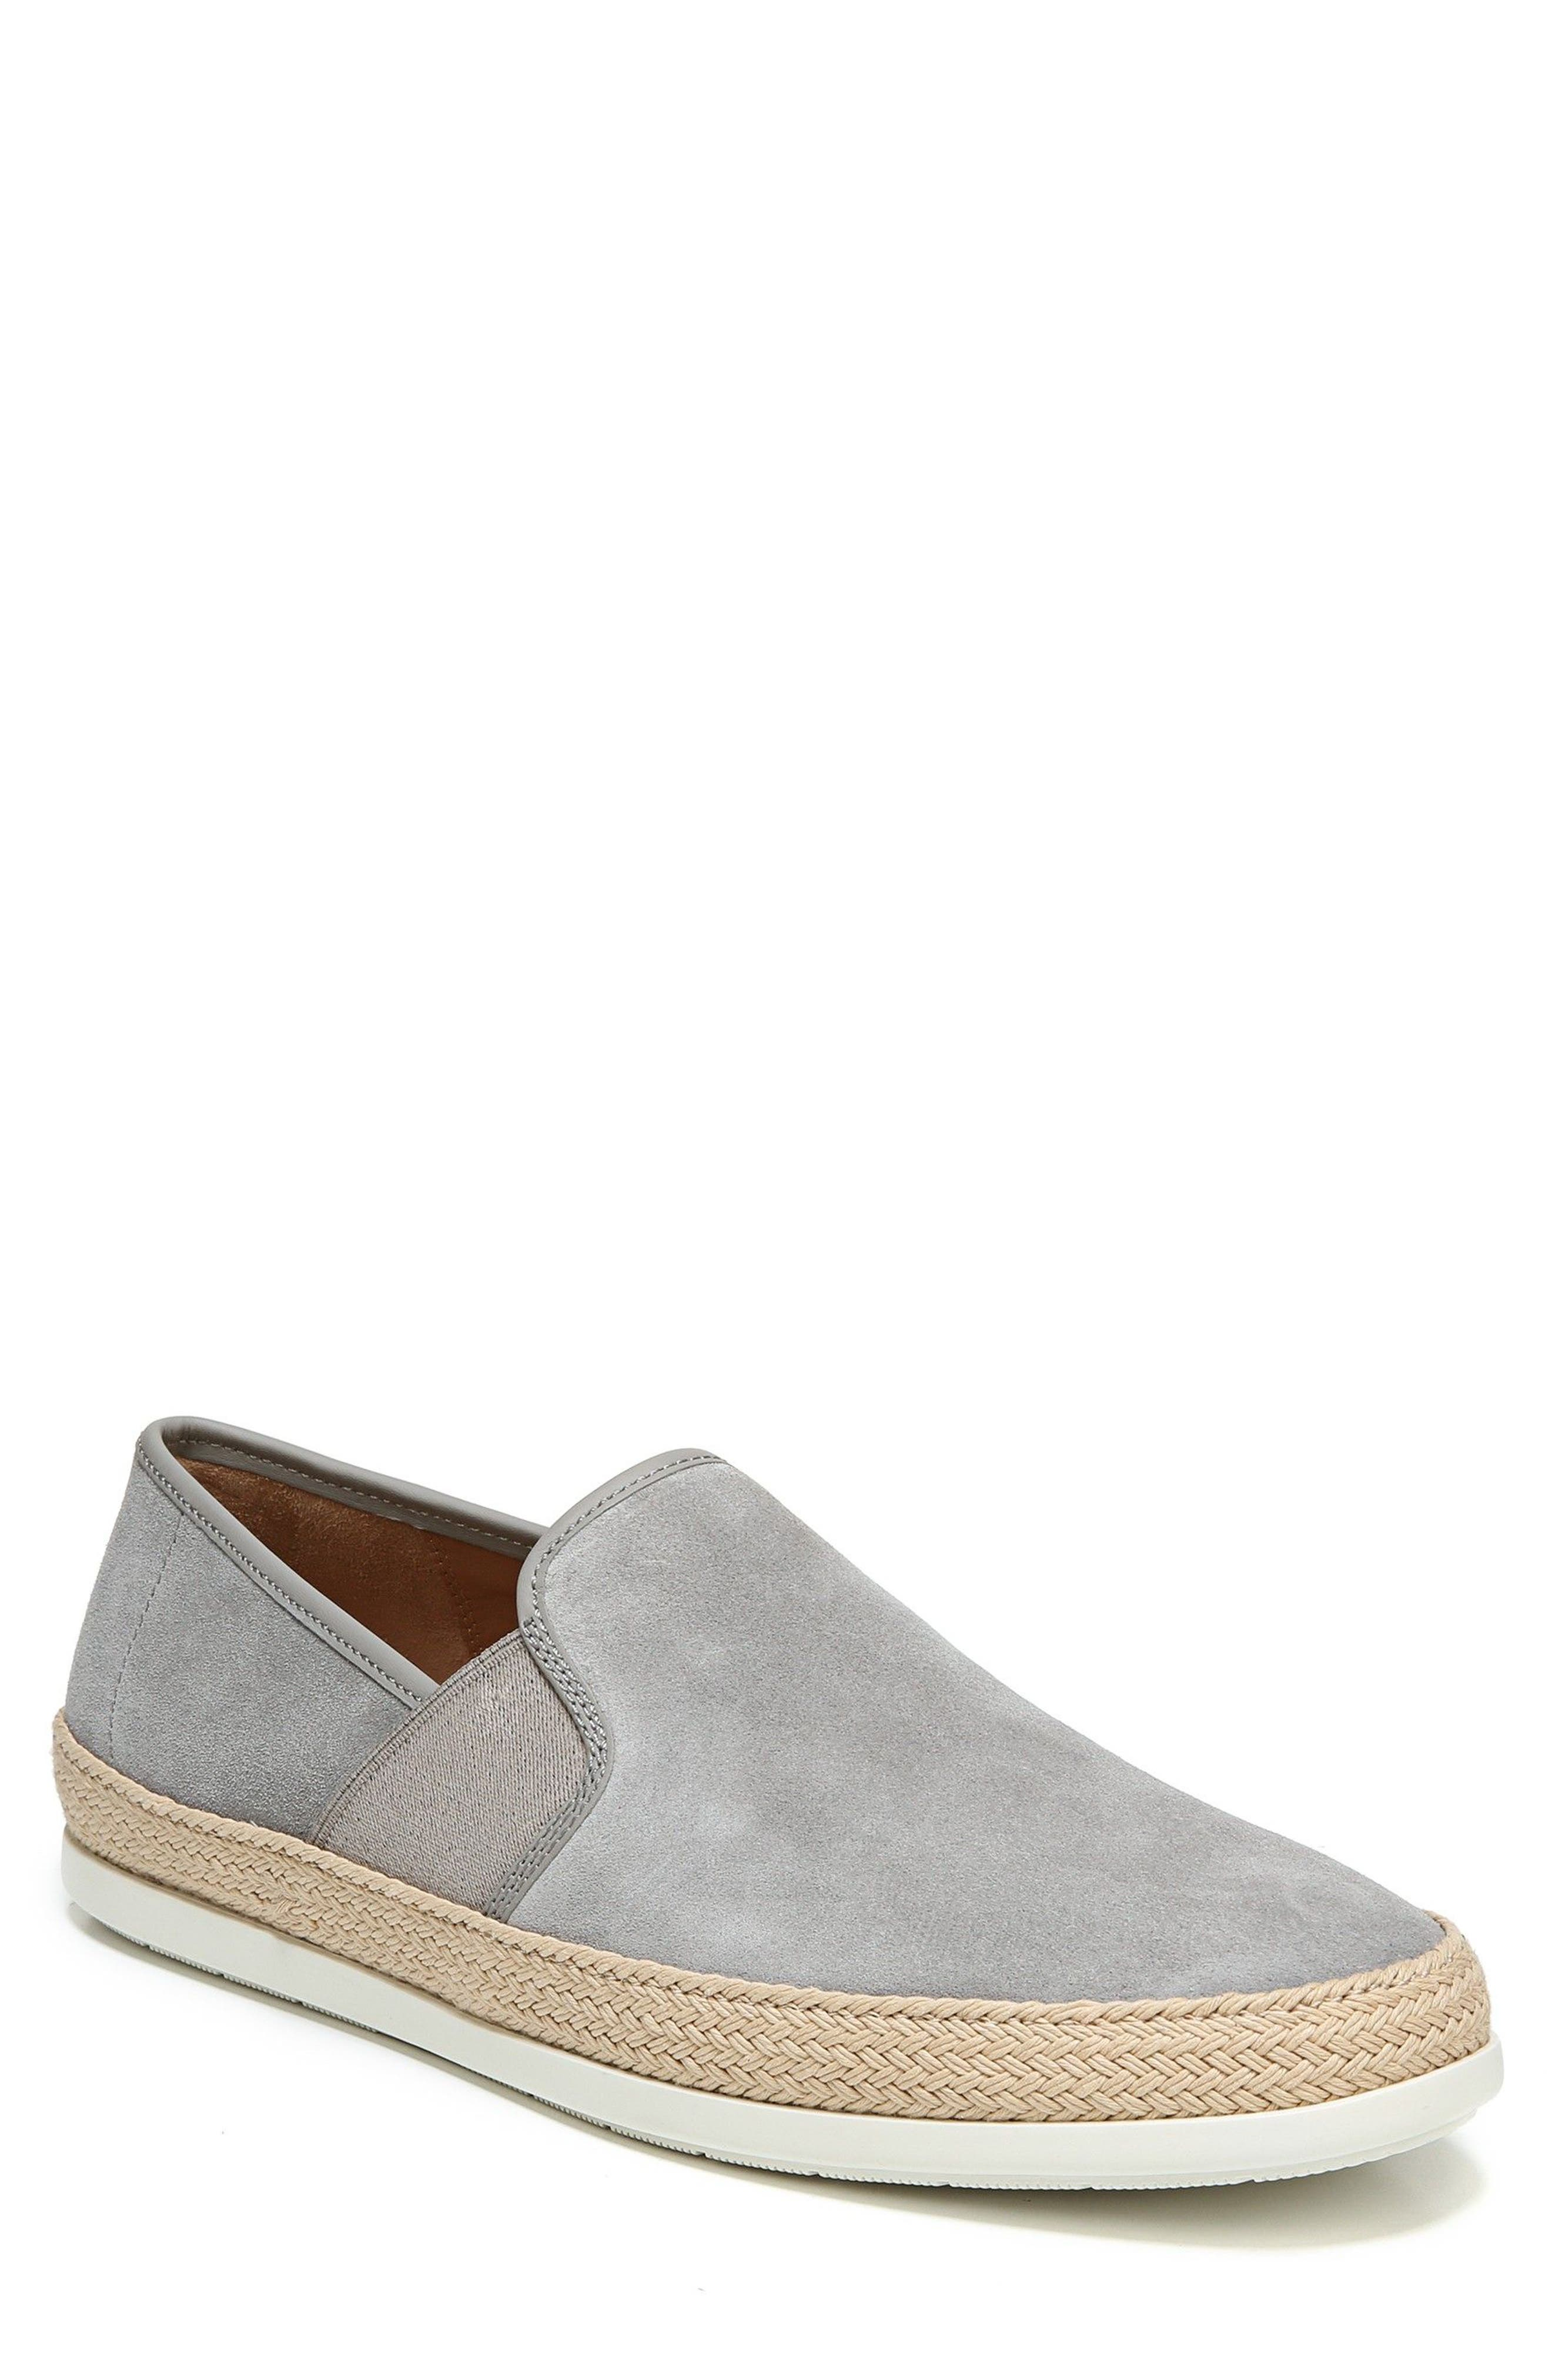 Chad Espadrille Slip-On Sneaker,                         Main,                         color, 020